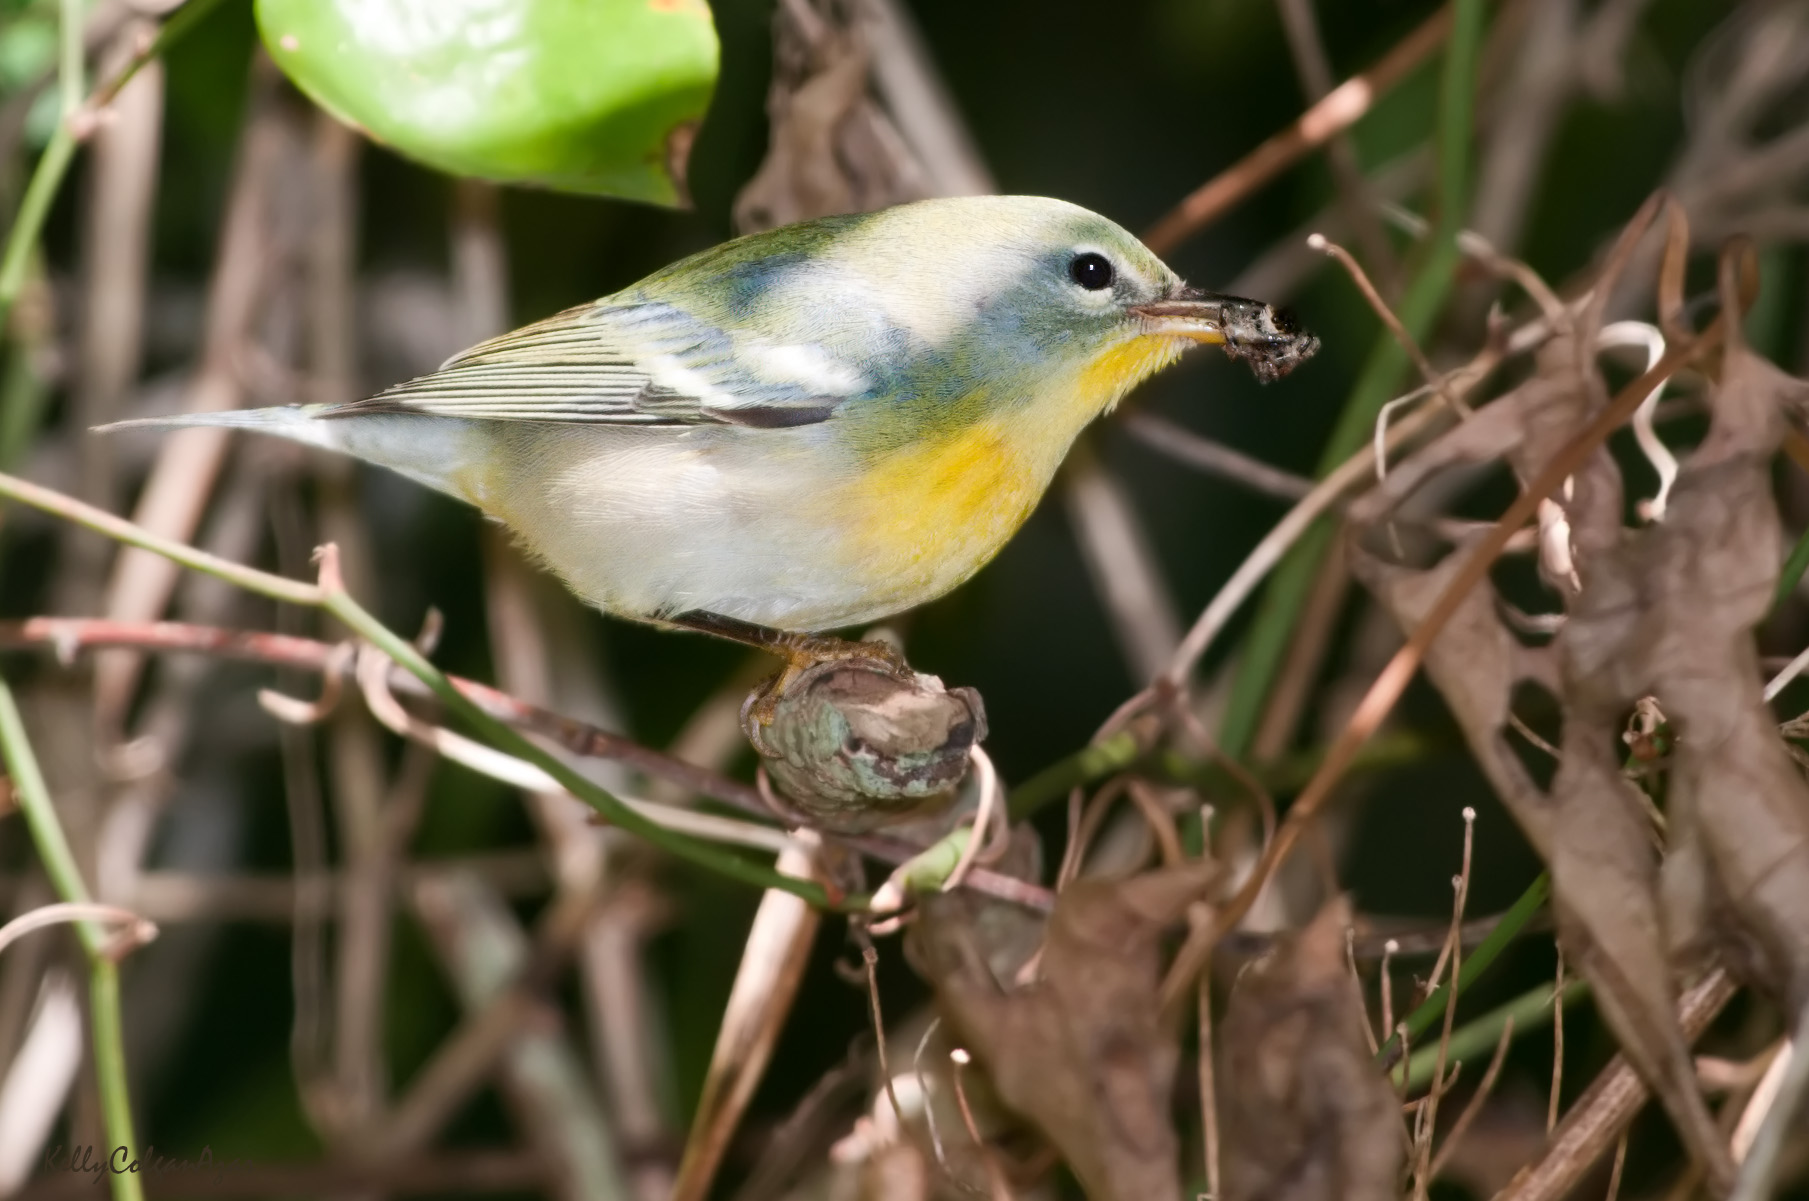 - Northern Parula Warbler (Setophaga americana)Northern Parula Warblers live mostly in deciduous forests near moving water that has moss to build nests with. They eat insects, berries, seeds, and some buds. Their wingspan is 6.3-7.1 in. and they weigh 0.2-0.4 oz. Northern Parula Warblers sing a buzzy trill. They are protected on the US Migratory Bird list.Photo Credits: Kelly Colgan Azar